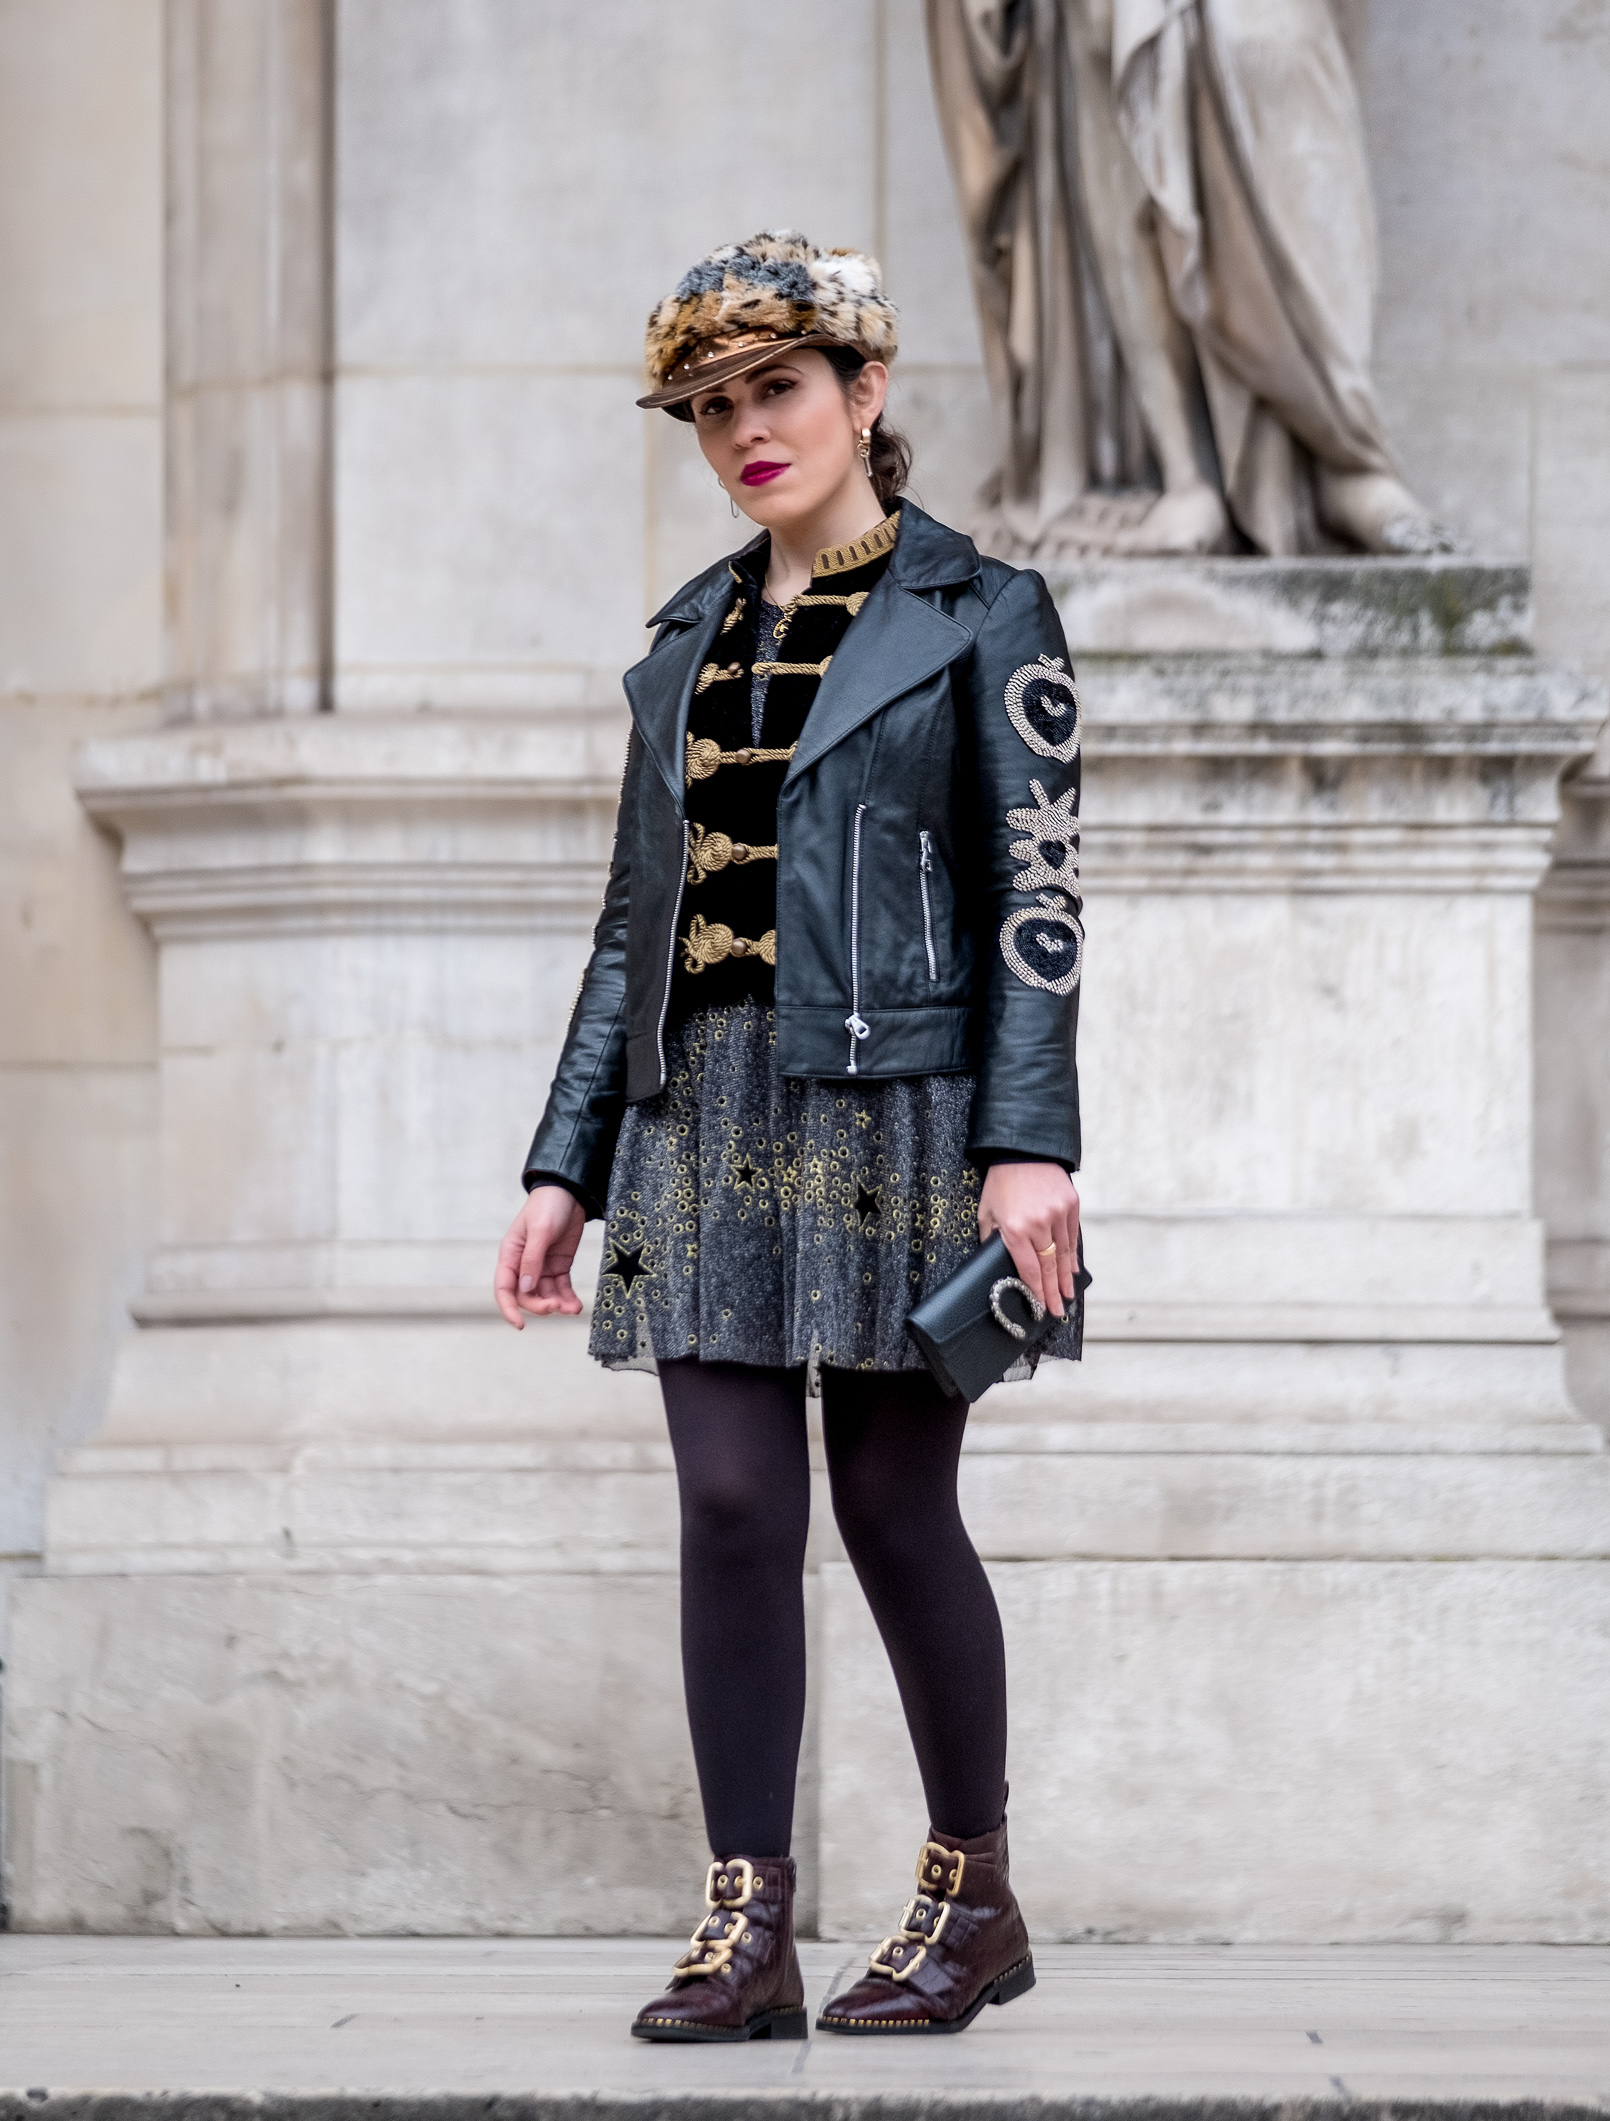 Le Fashionaire velvet gold military zara jacket glitter gray gold stars zara dress leather croco burgundy topshop boots gold buckles 4470 EN velvet gold military zara jacket glitter gray gold stars zara dress leather croco burgundy topshop boots gold buckles 4470 EN